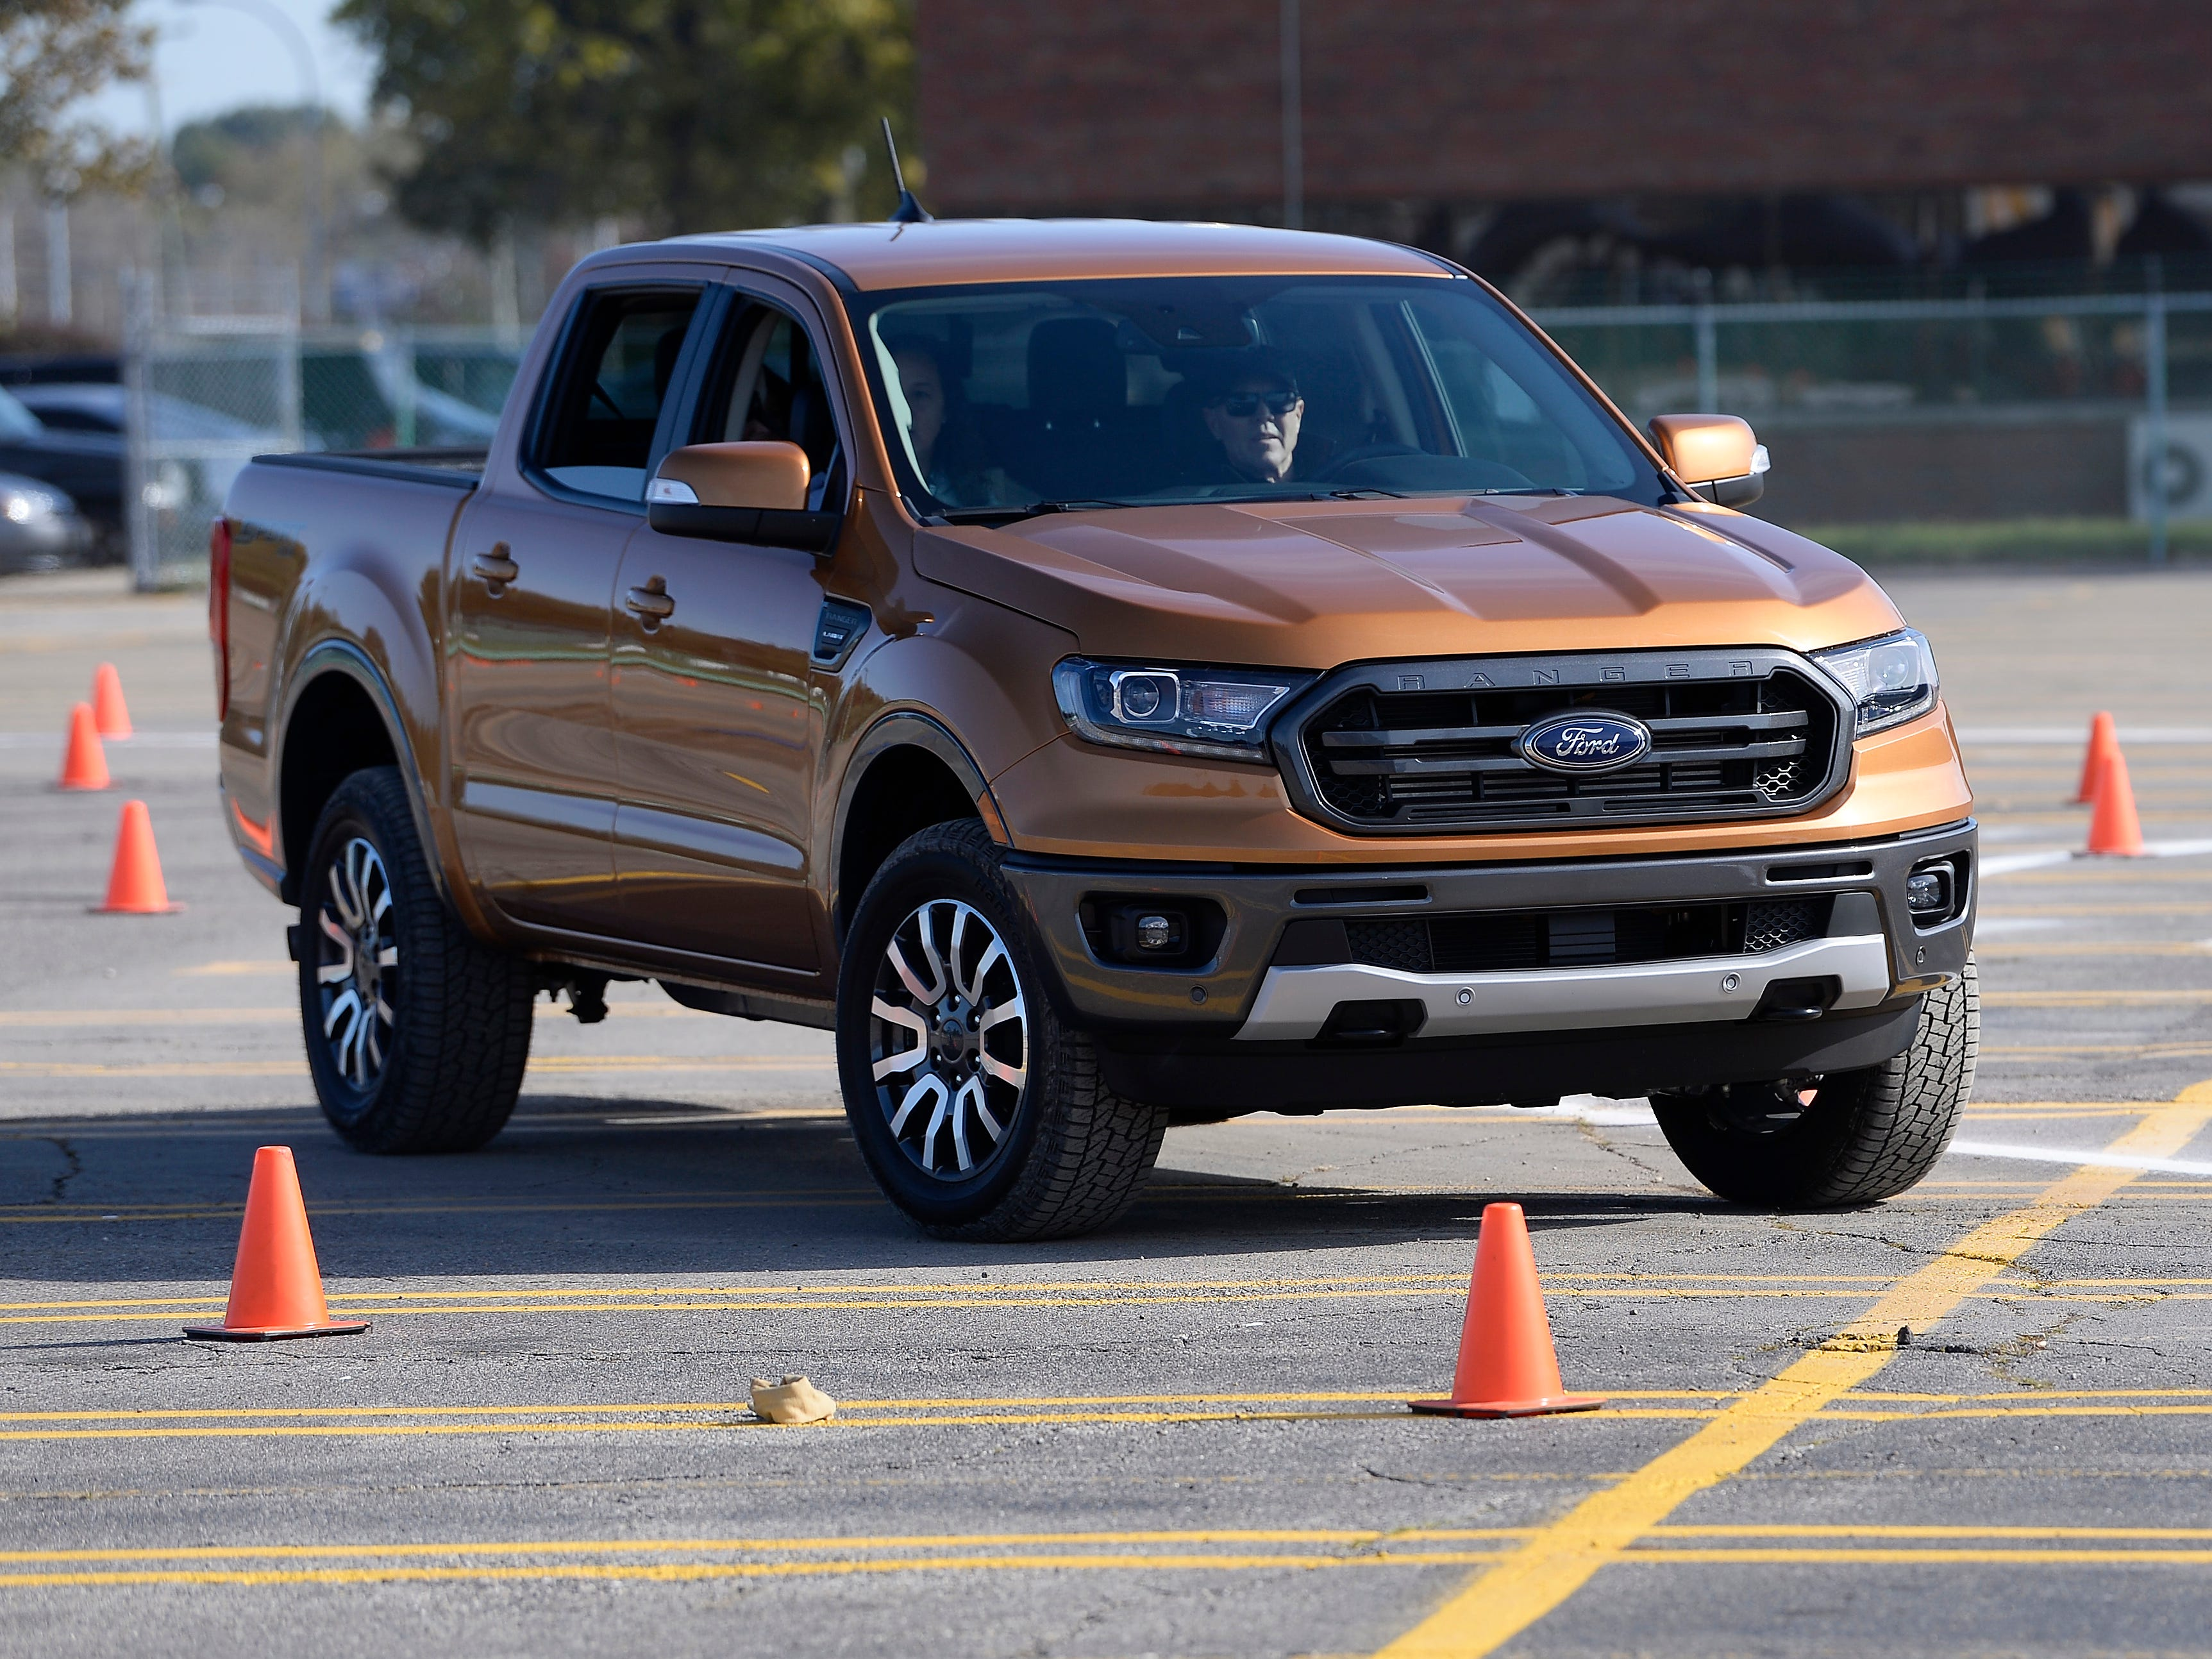 Ford employees at the Michigan Assembly Plant in Wayne, Michigan, had the chance to drive hand-built 2019 Ford Ranger pickups Monday on a makeshift off-road course set up in the plant's parking lot. Official production begins October 29 at the plant, which will build its first trucks since 2010.